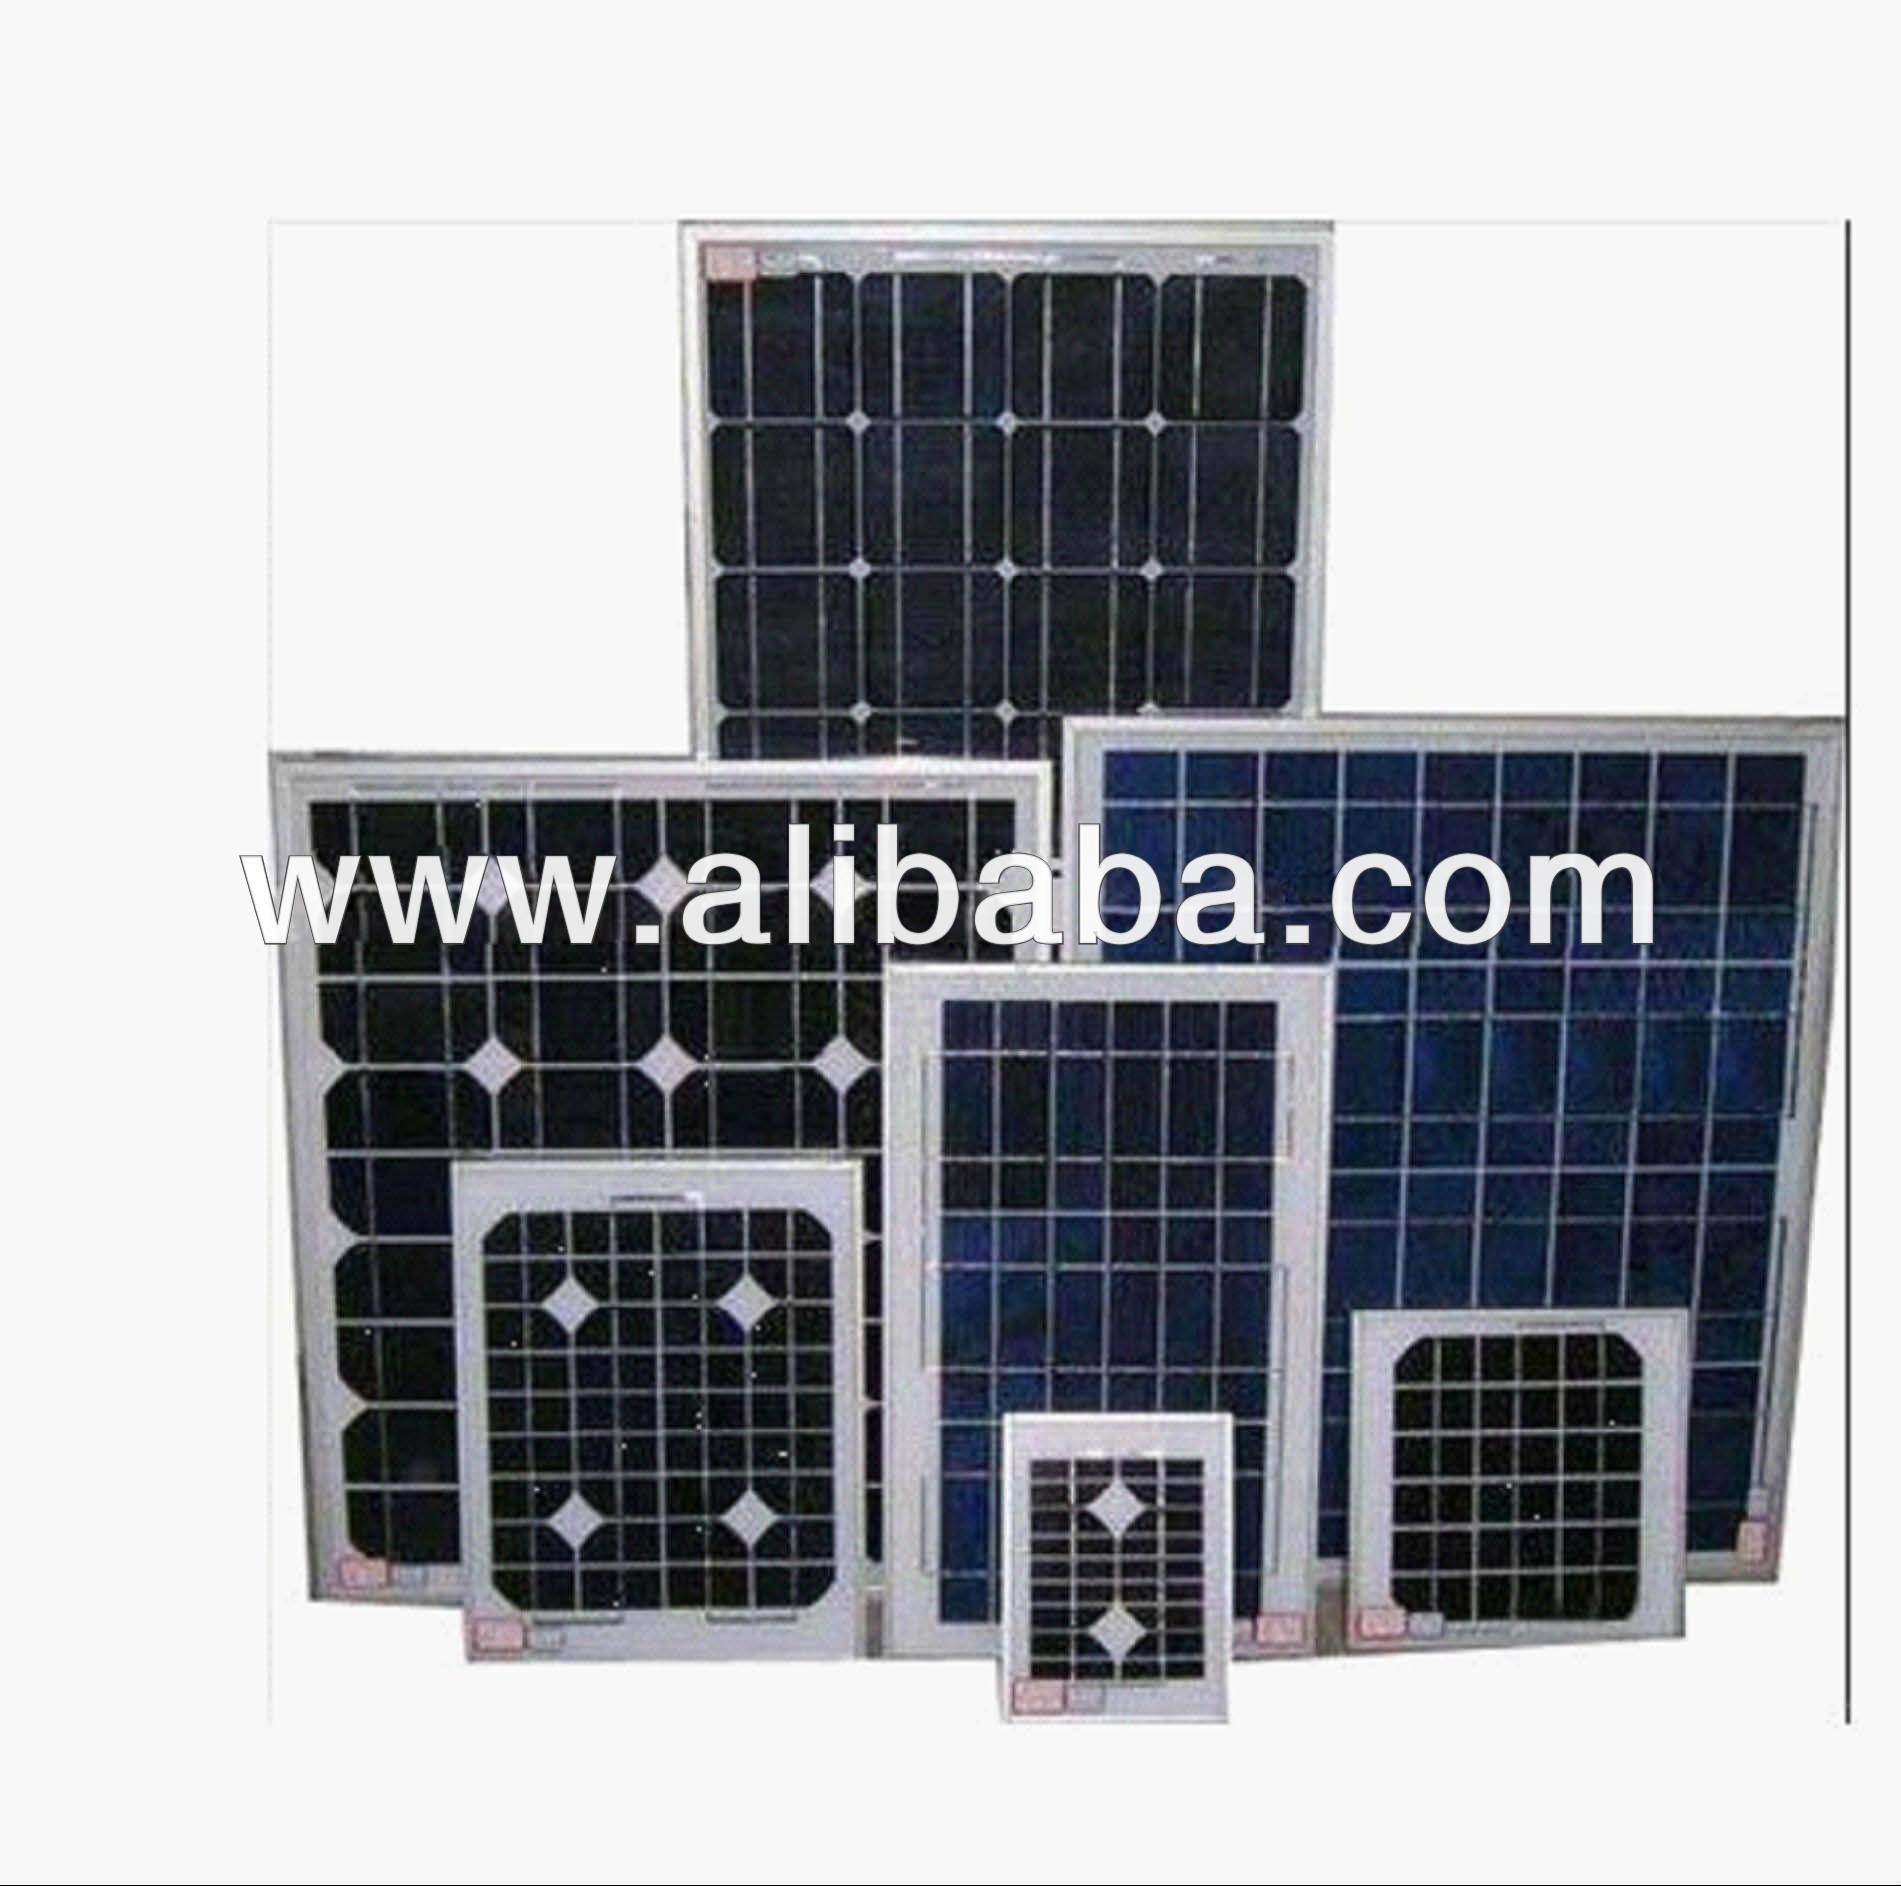 AUTMOTIVE/UPS BATTERY/SOLAR UPS/INVERTER/ PANEL(EXIDE,AGS,VOLTA/OSAKA,DRY)